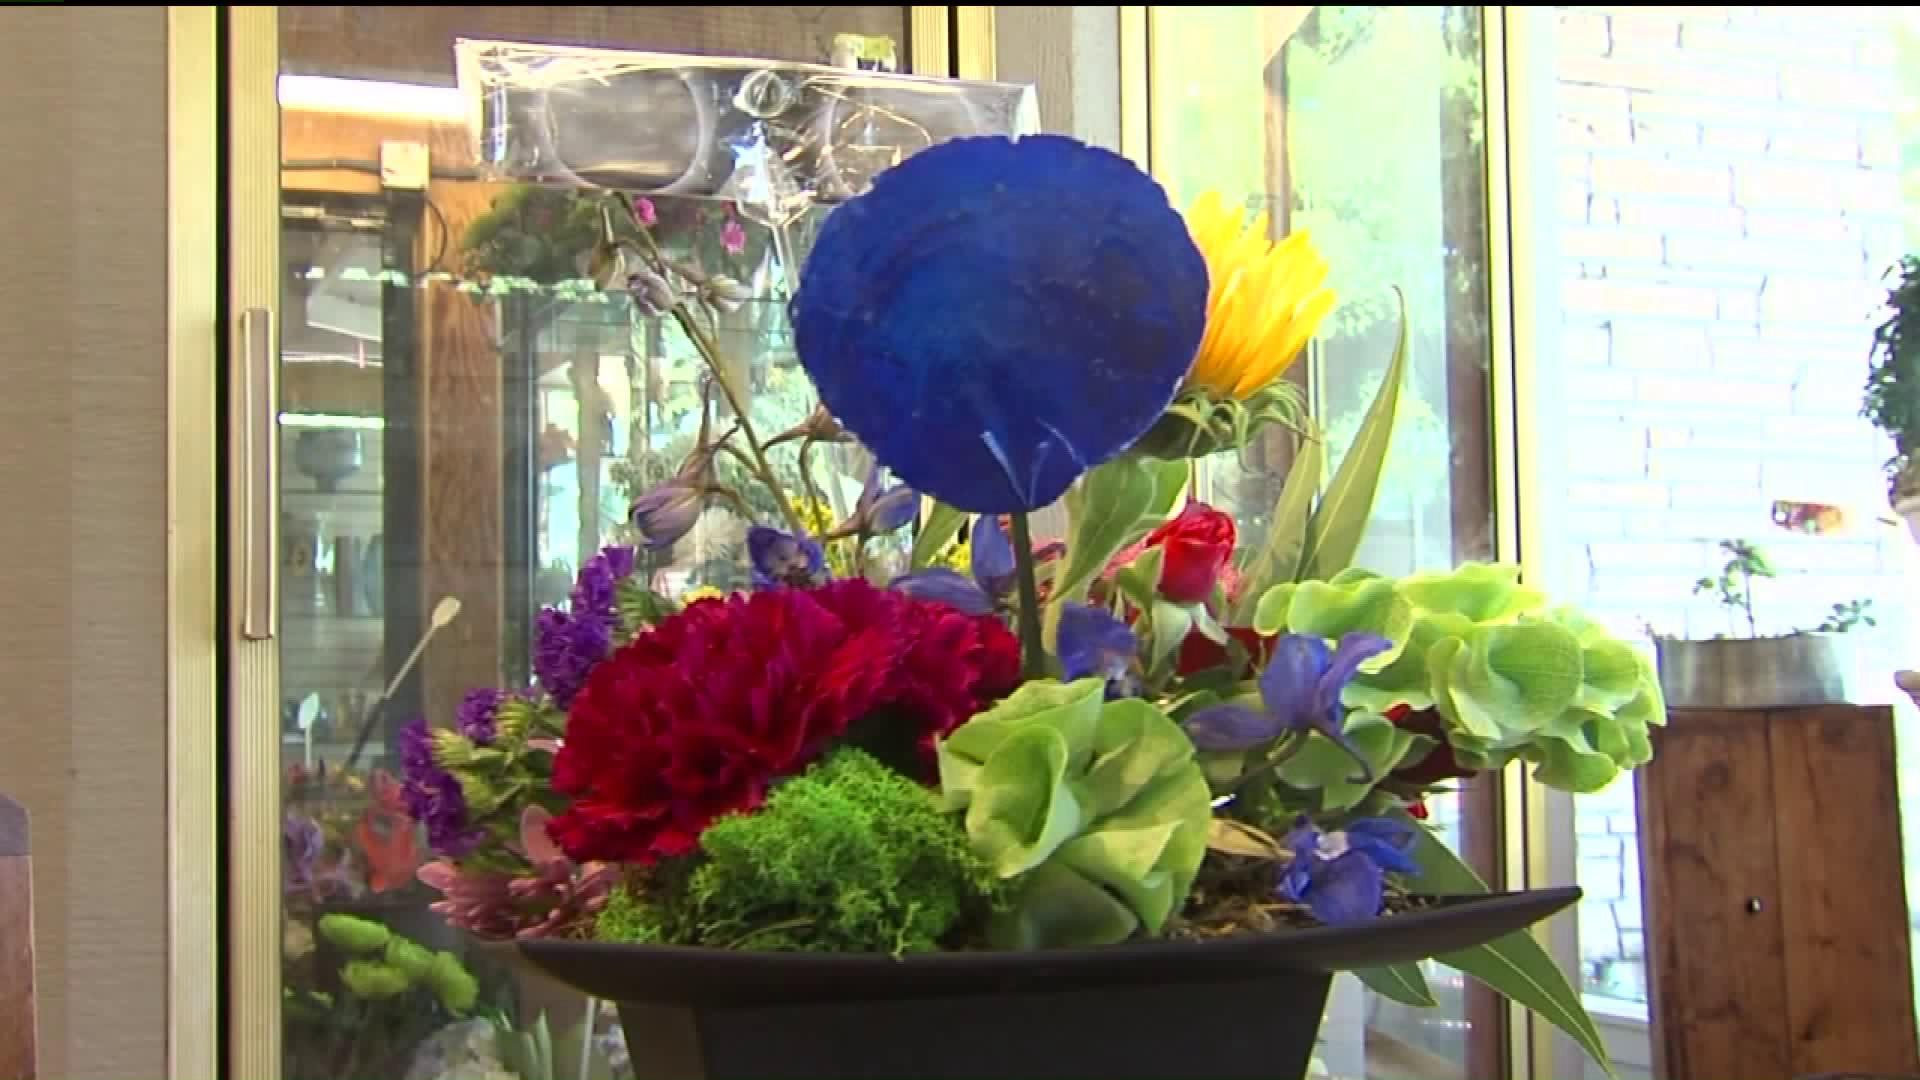 California Florist Gets Creative With Solar Eclipse Craze